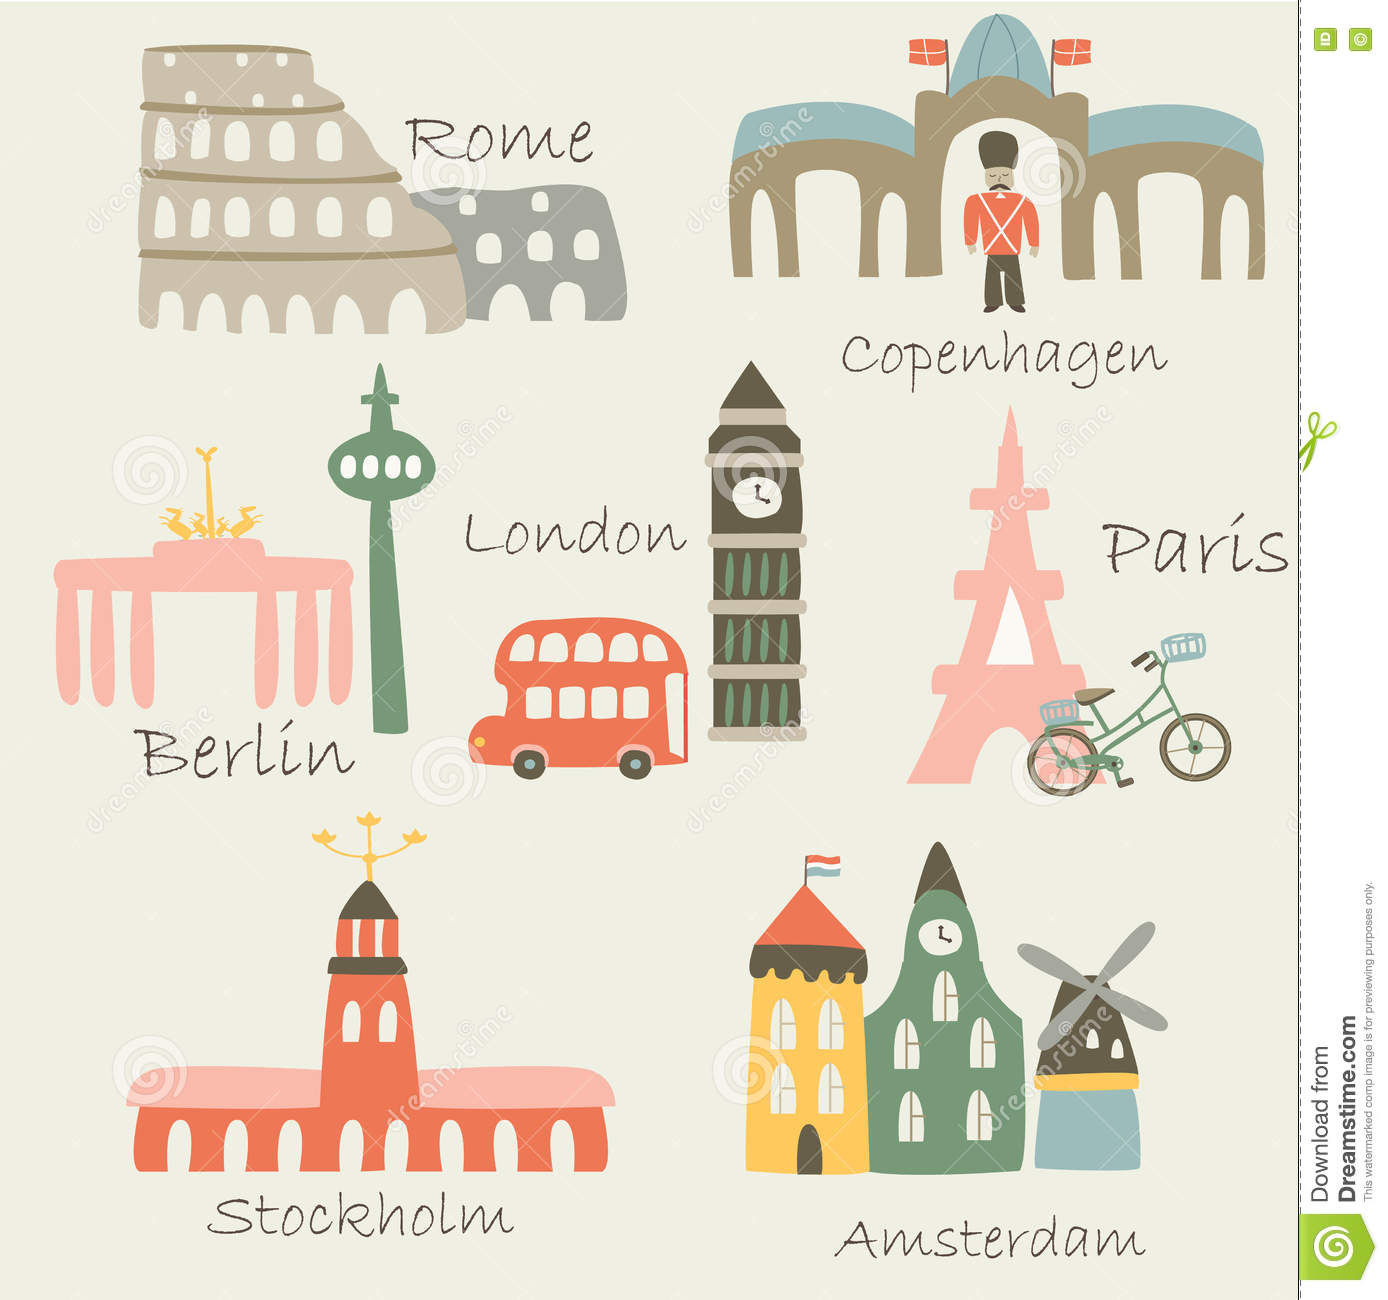 BEST ROUTE- Paris, Amsterdam and Berlin - Amsterdam Forum